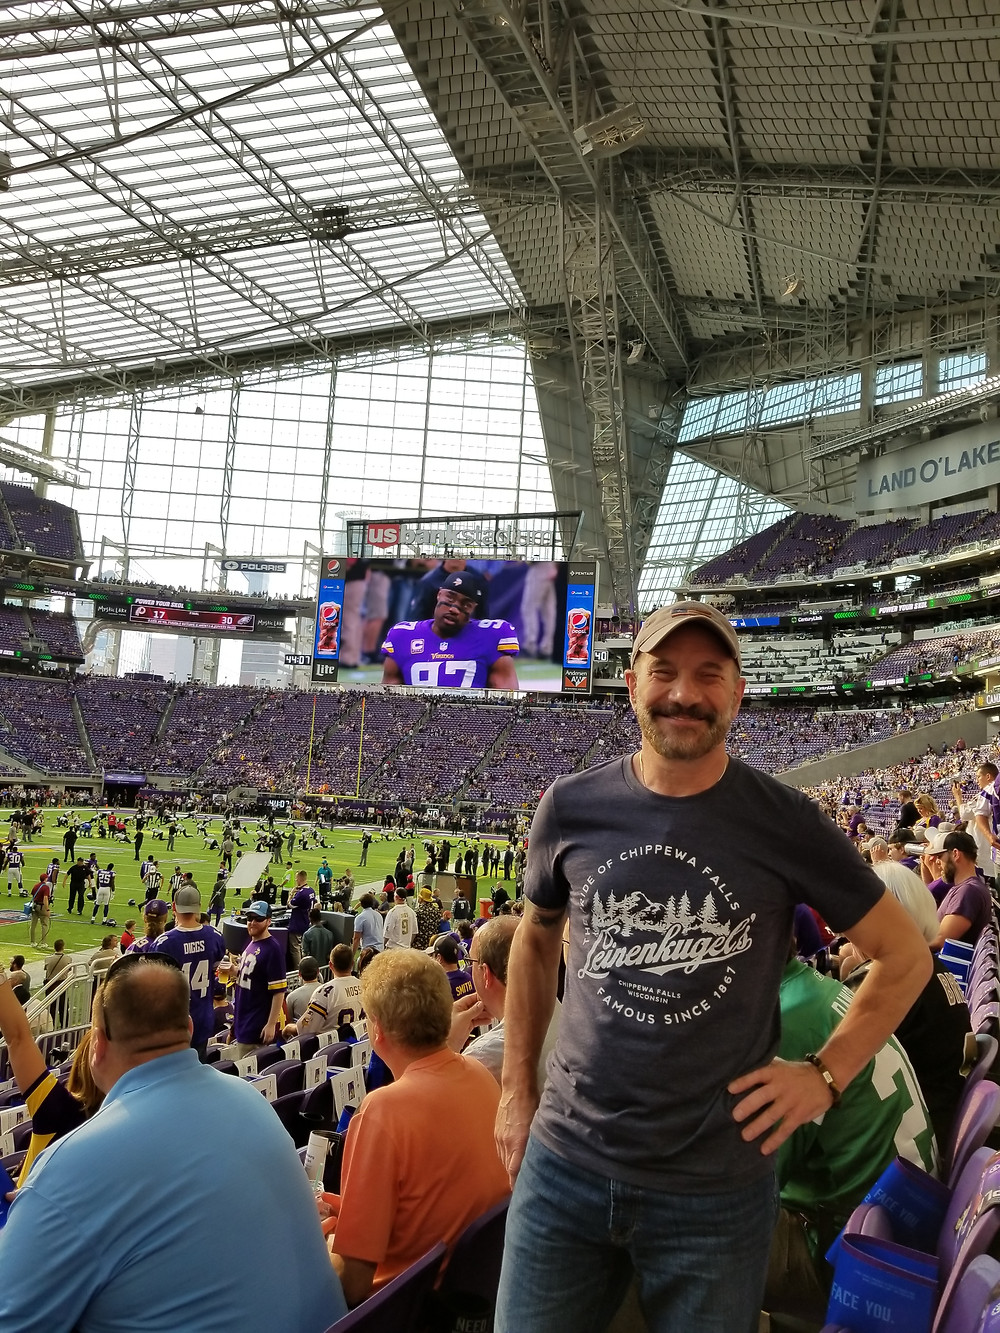 US Bank Stadium Review